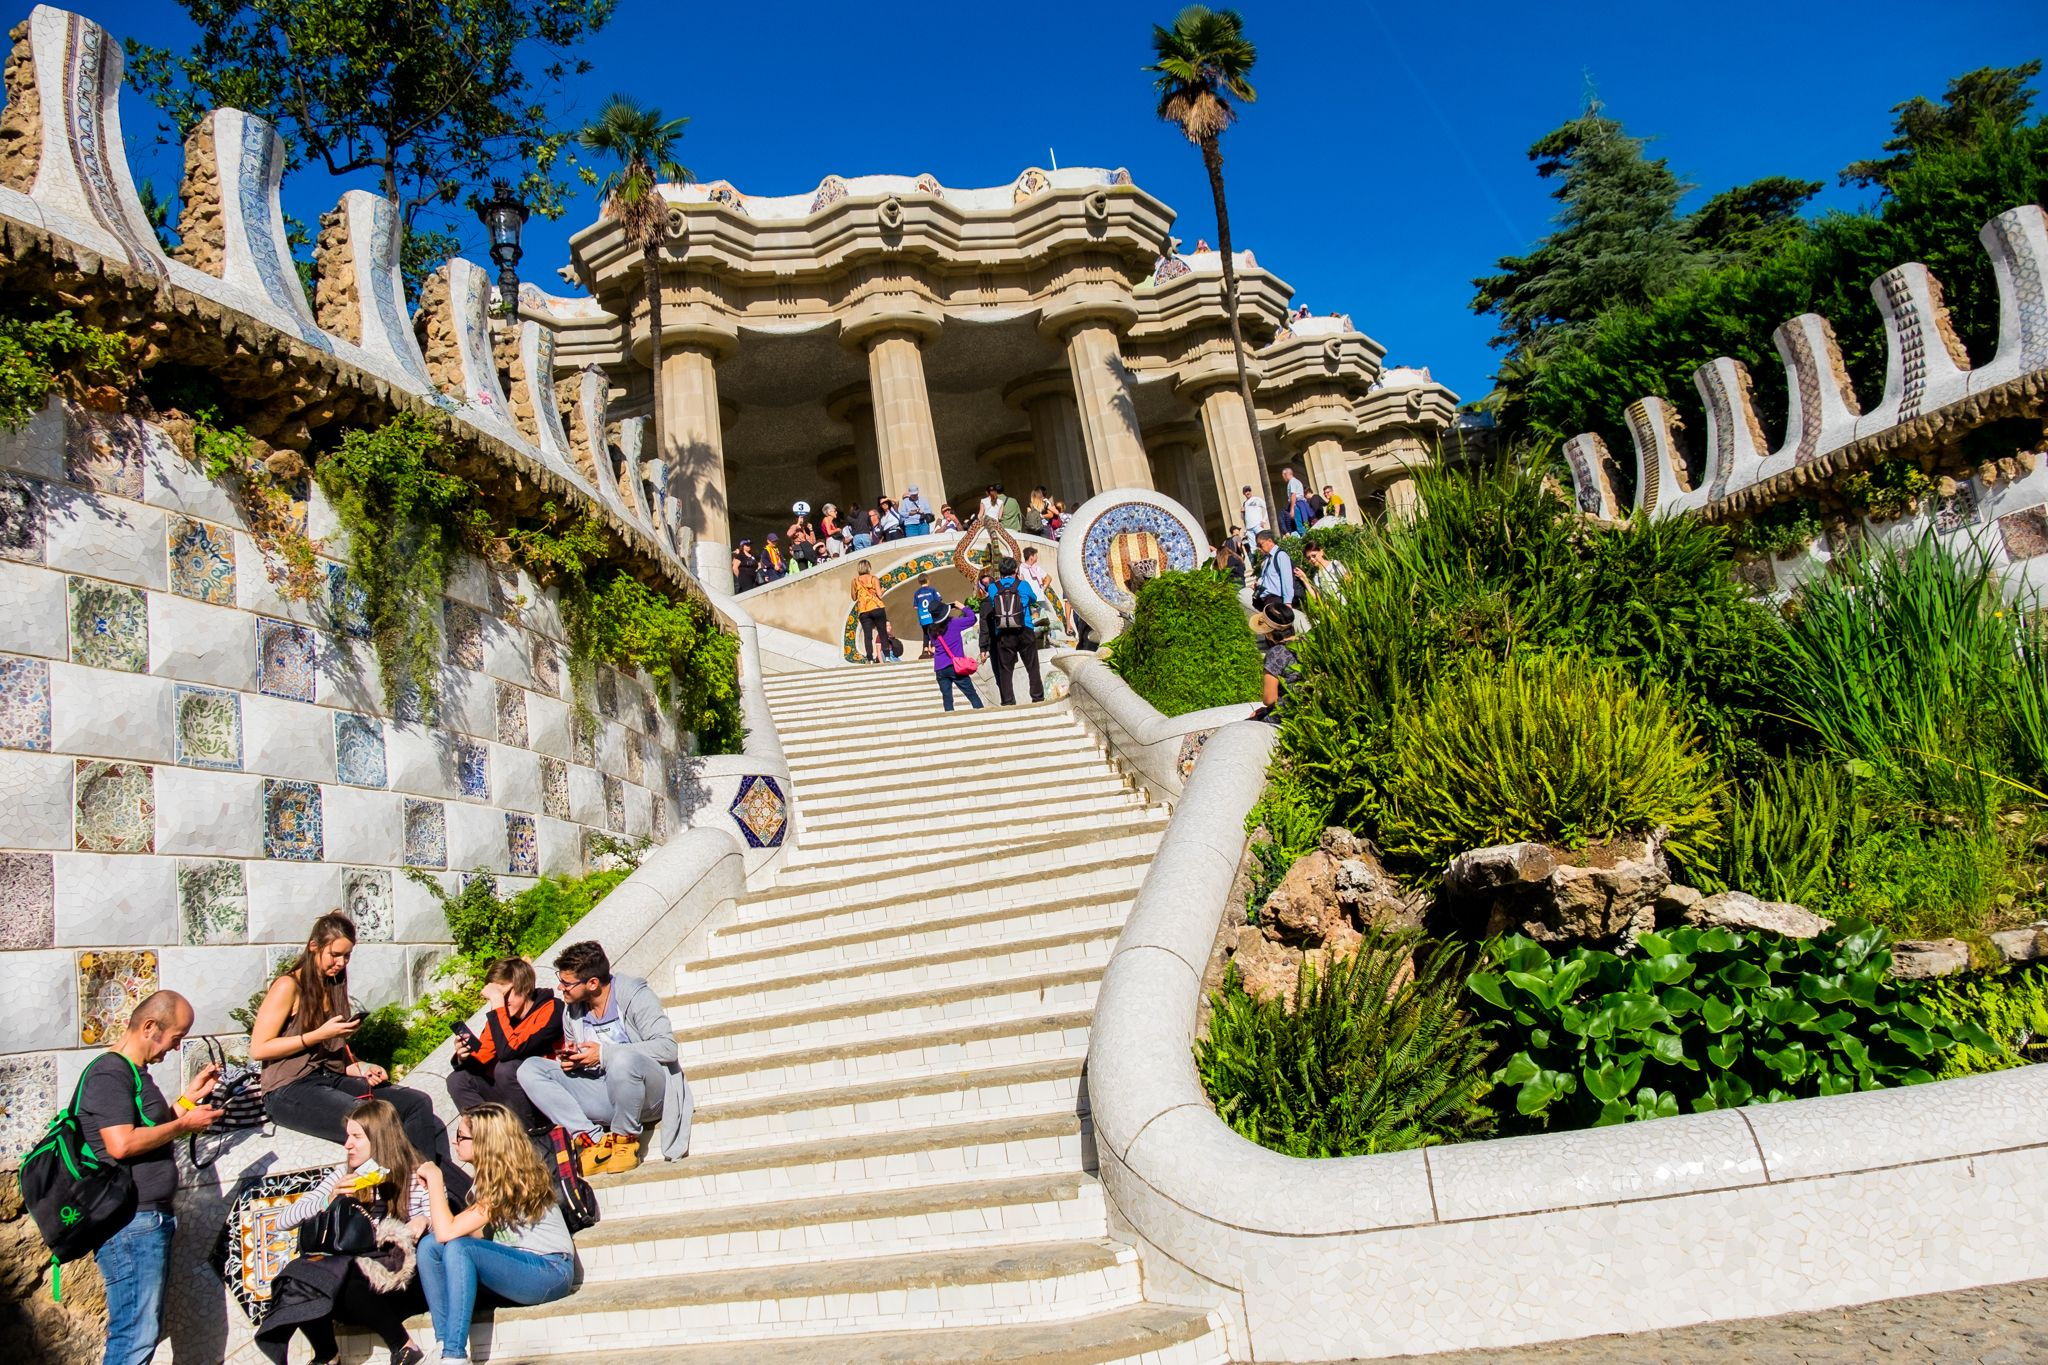 staircases of Parc Guell